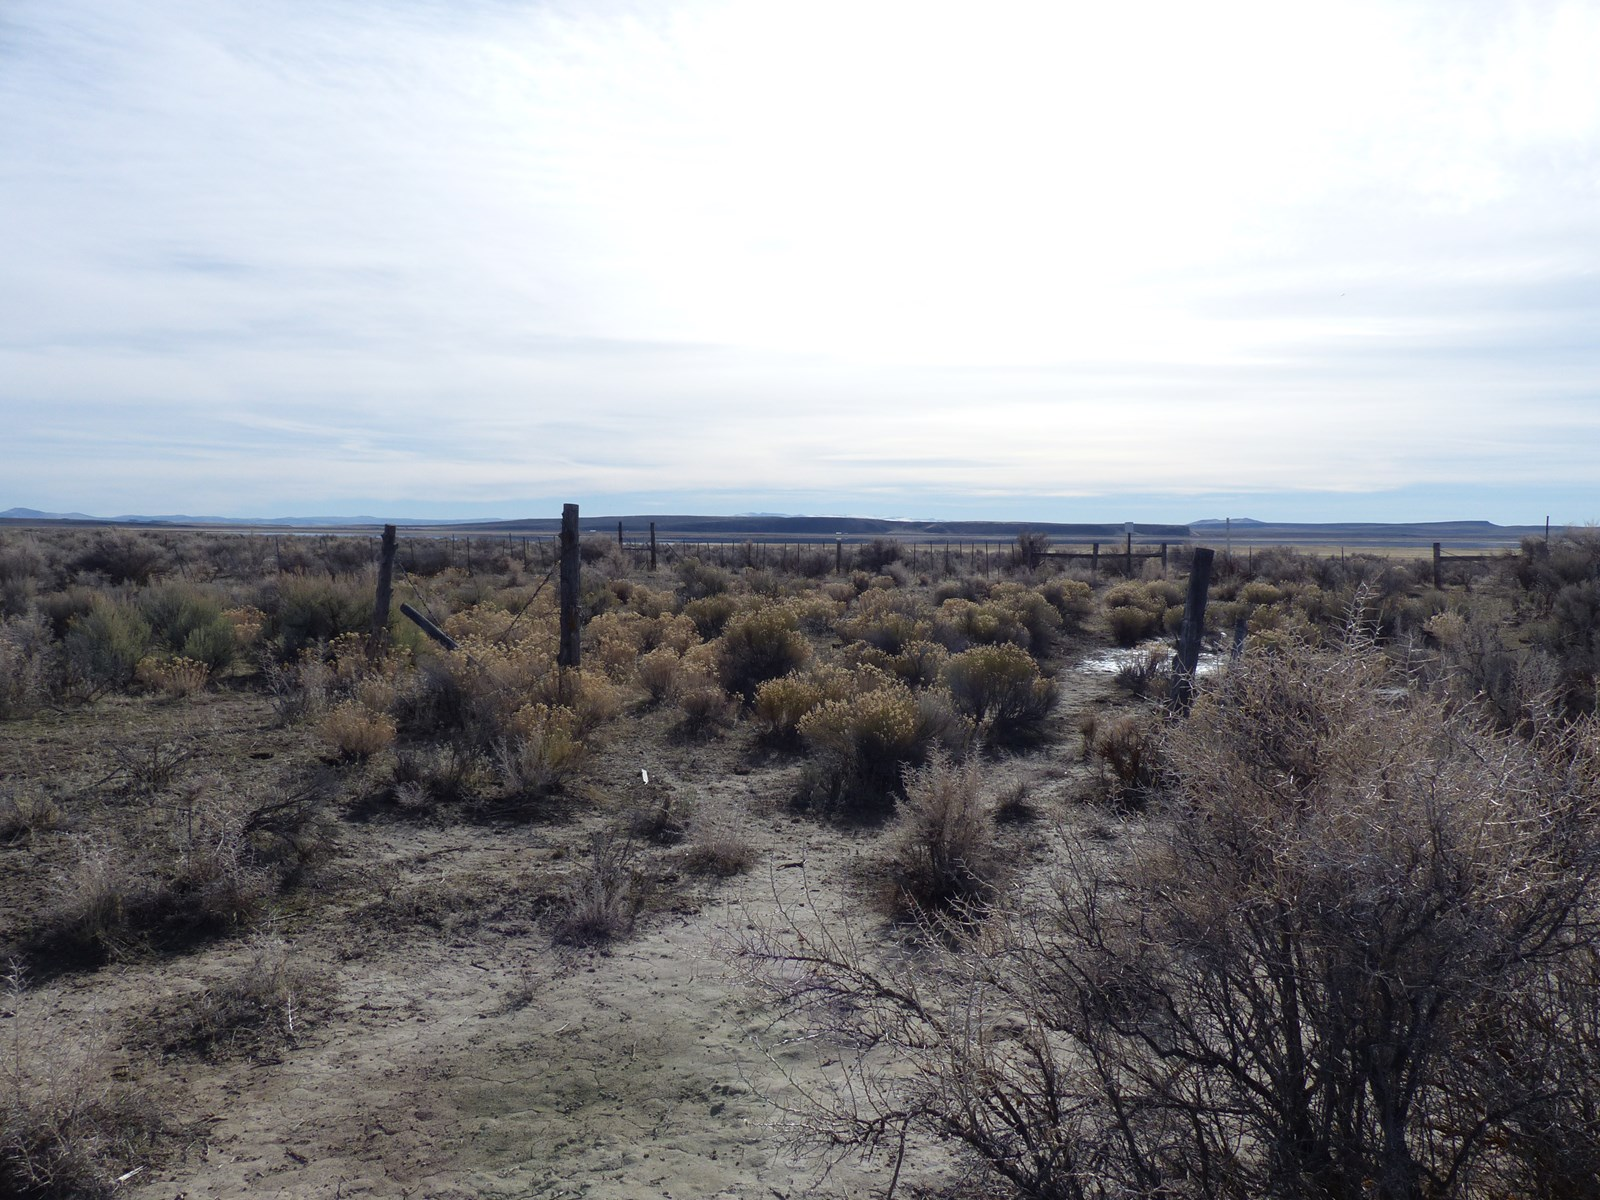 ACREAGE FOR SALE SOUTH OF BURNS OR OFF HWY 205